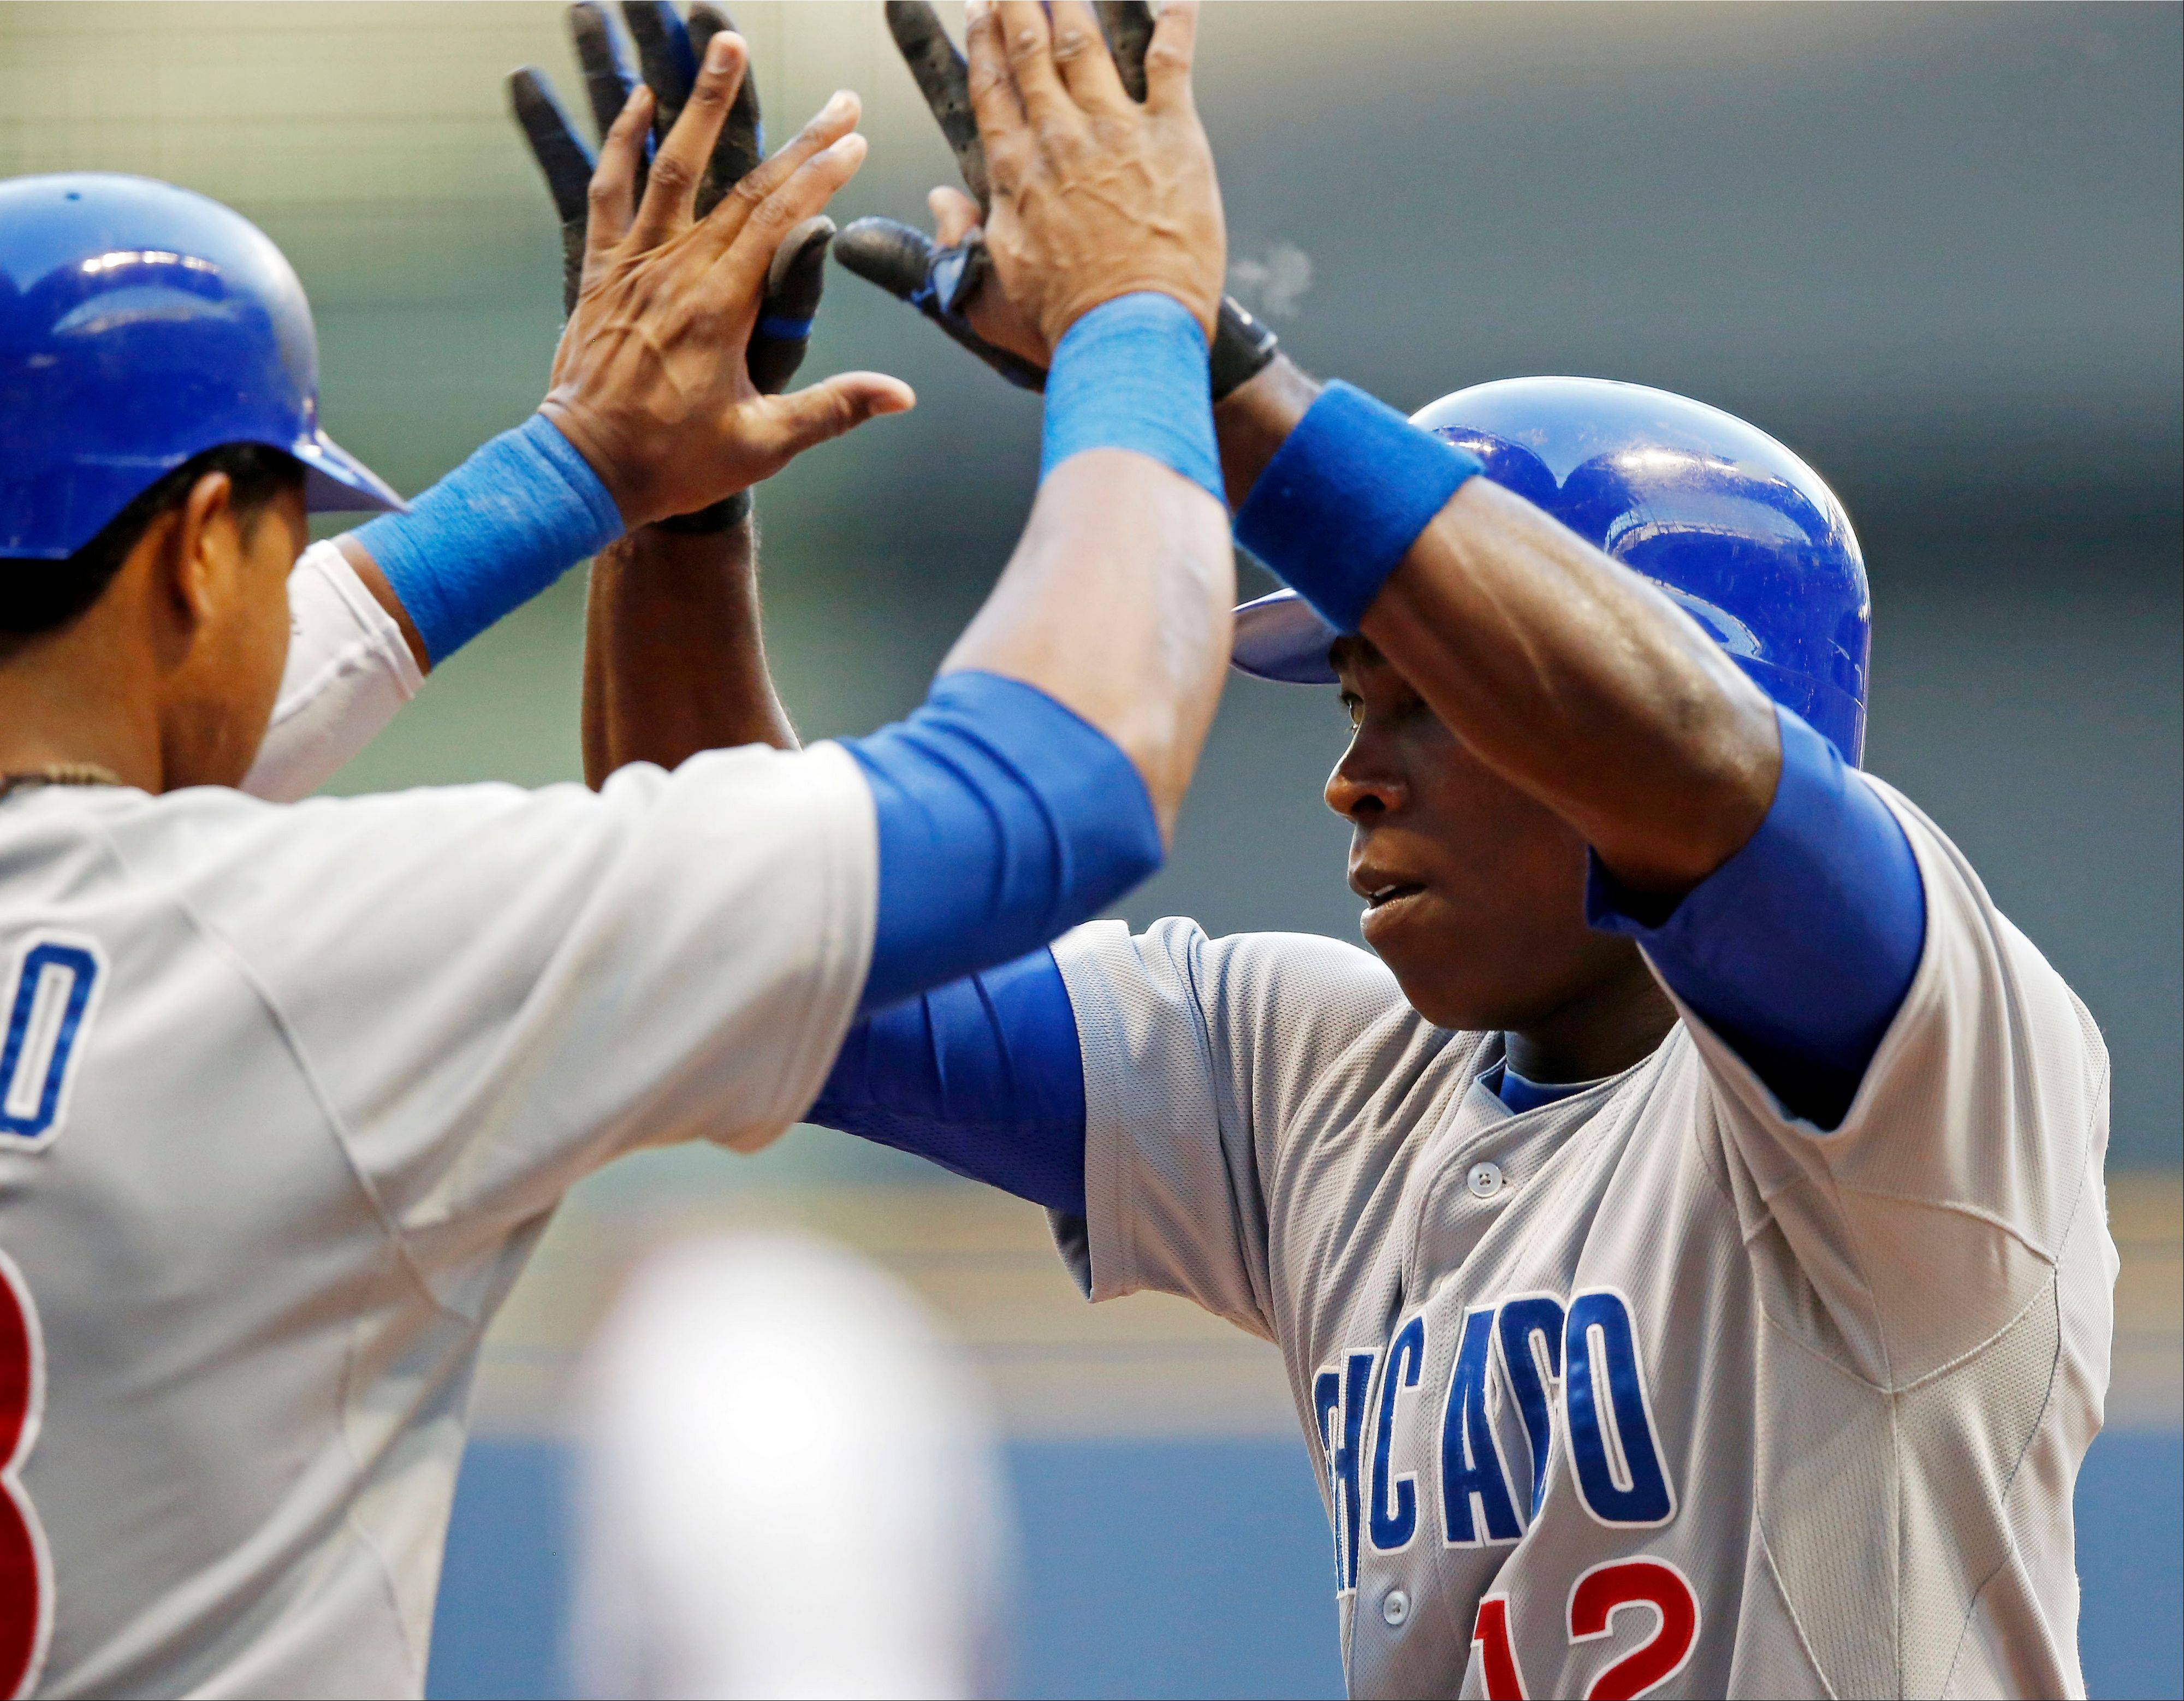 Alfonso Soriano, right, is 28 homers shy of 400 in his career. He also needs 11 homers to reach 175 with the Cubs and pass Andre Dawson for 12th all time on the team�s list.